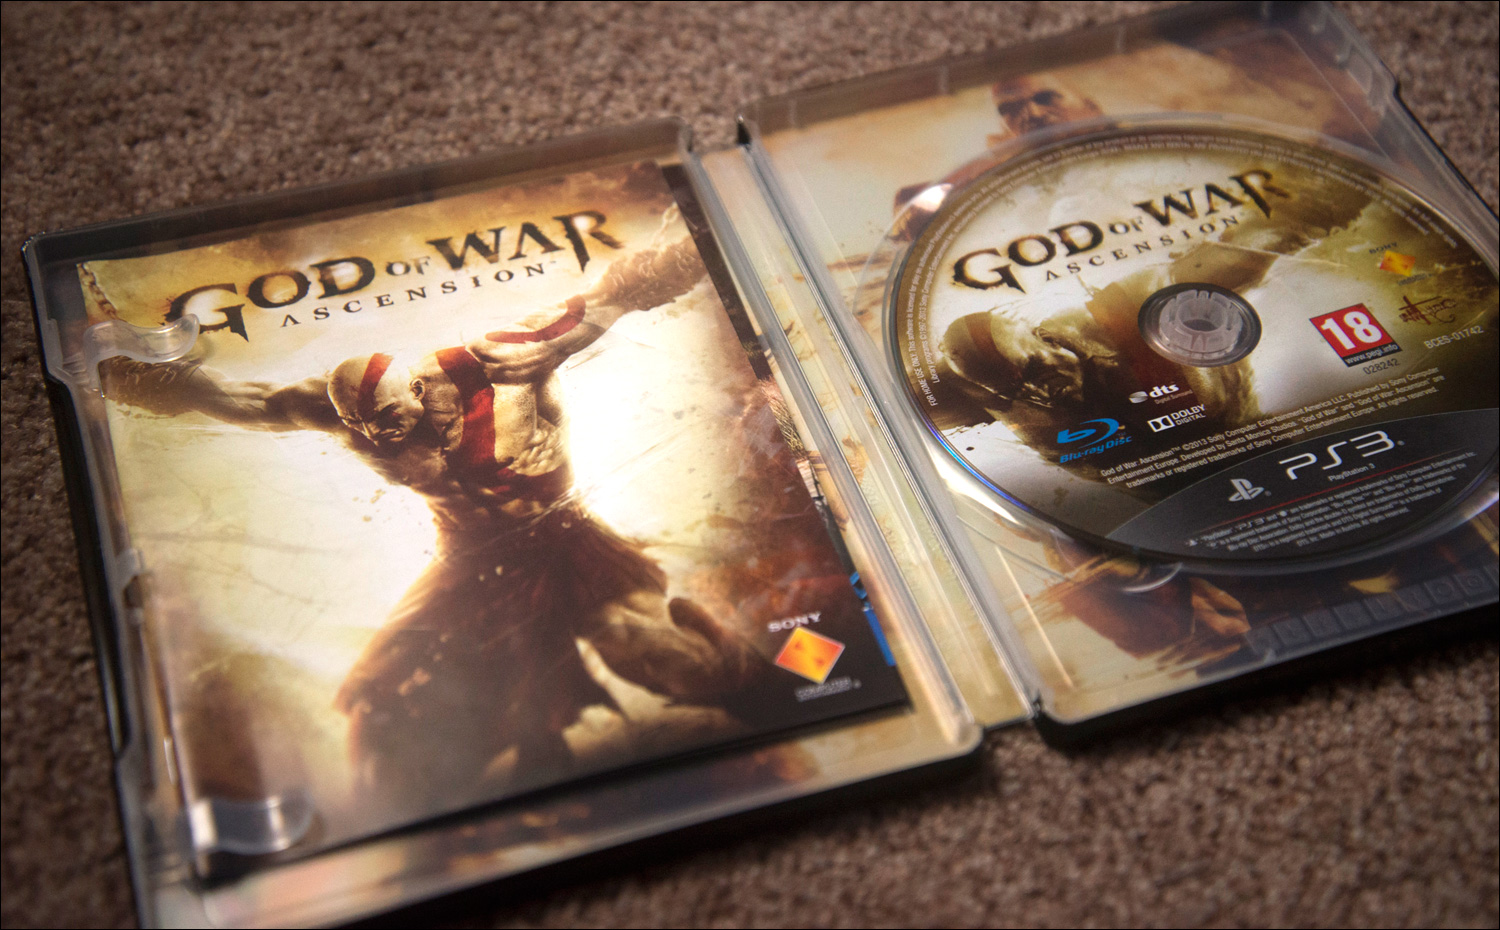 God-of-War-Ascension-Special-Edition-Contents